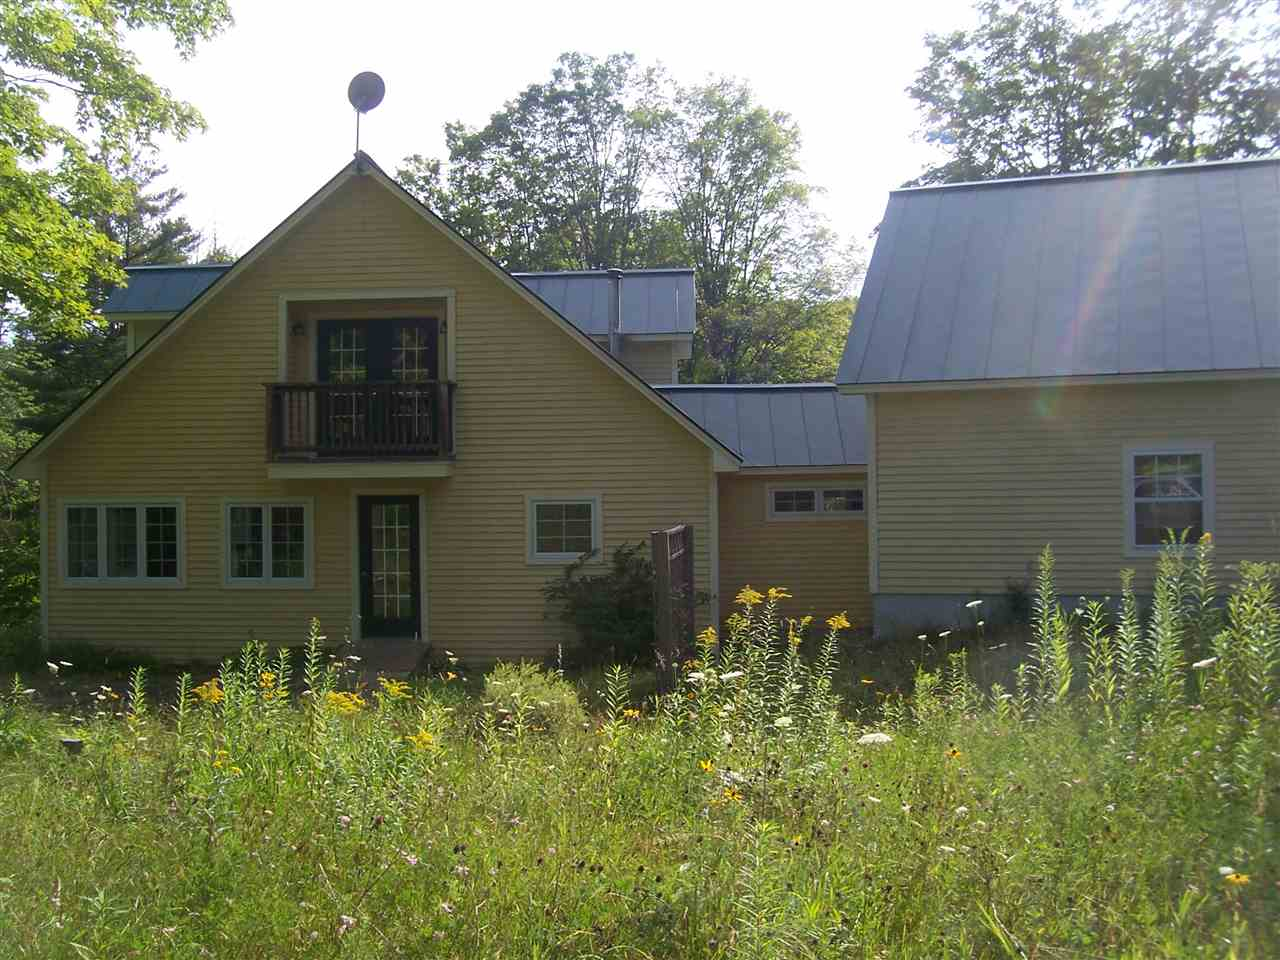 Village of Brownsville in Town of West Windsor VT  05037 Home for sale $List Price is $191,000